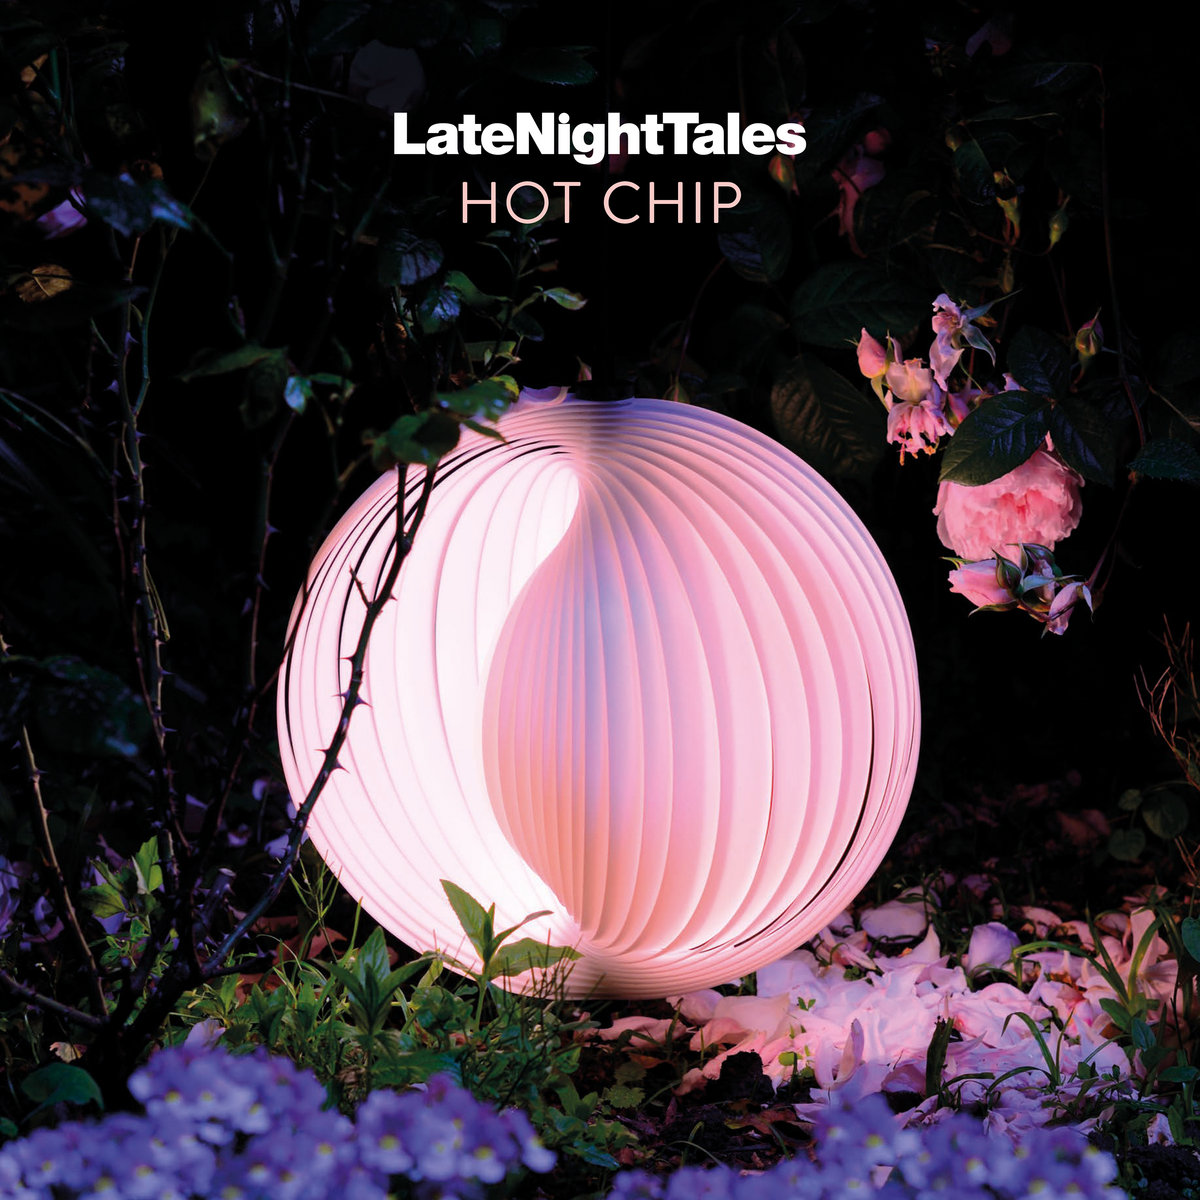 Late Night Tales: Hot Chip | Hot Chip | Late Night Tales